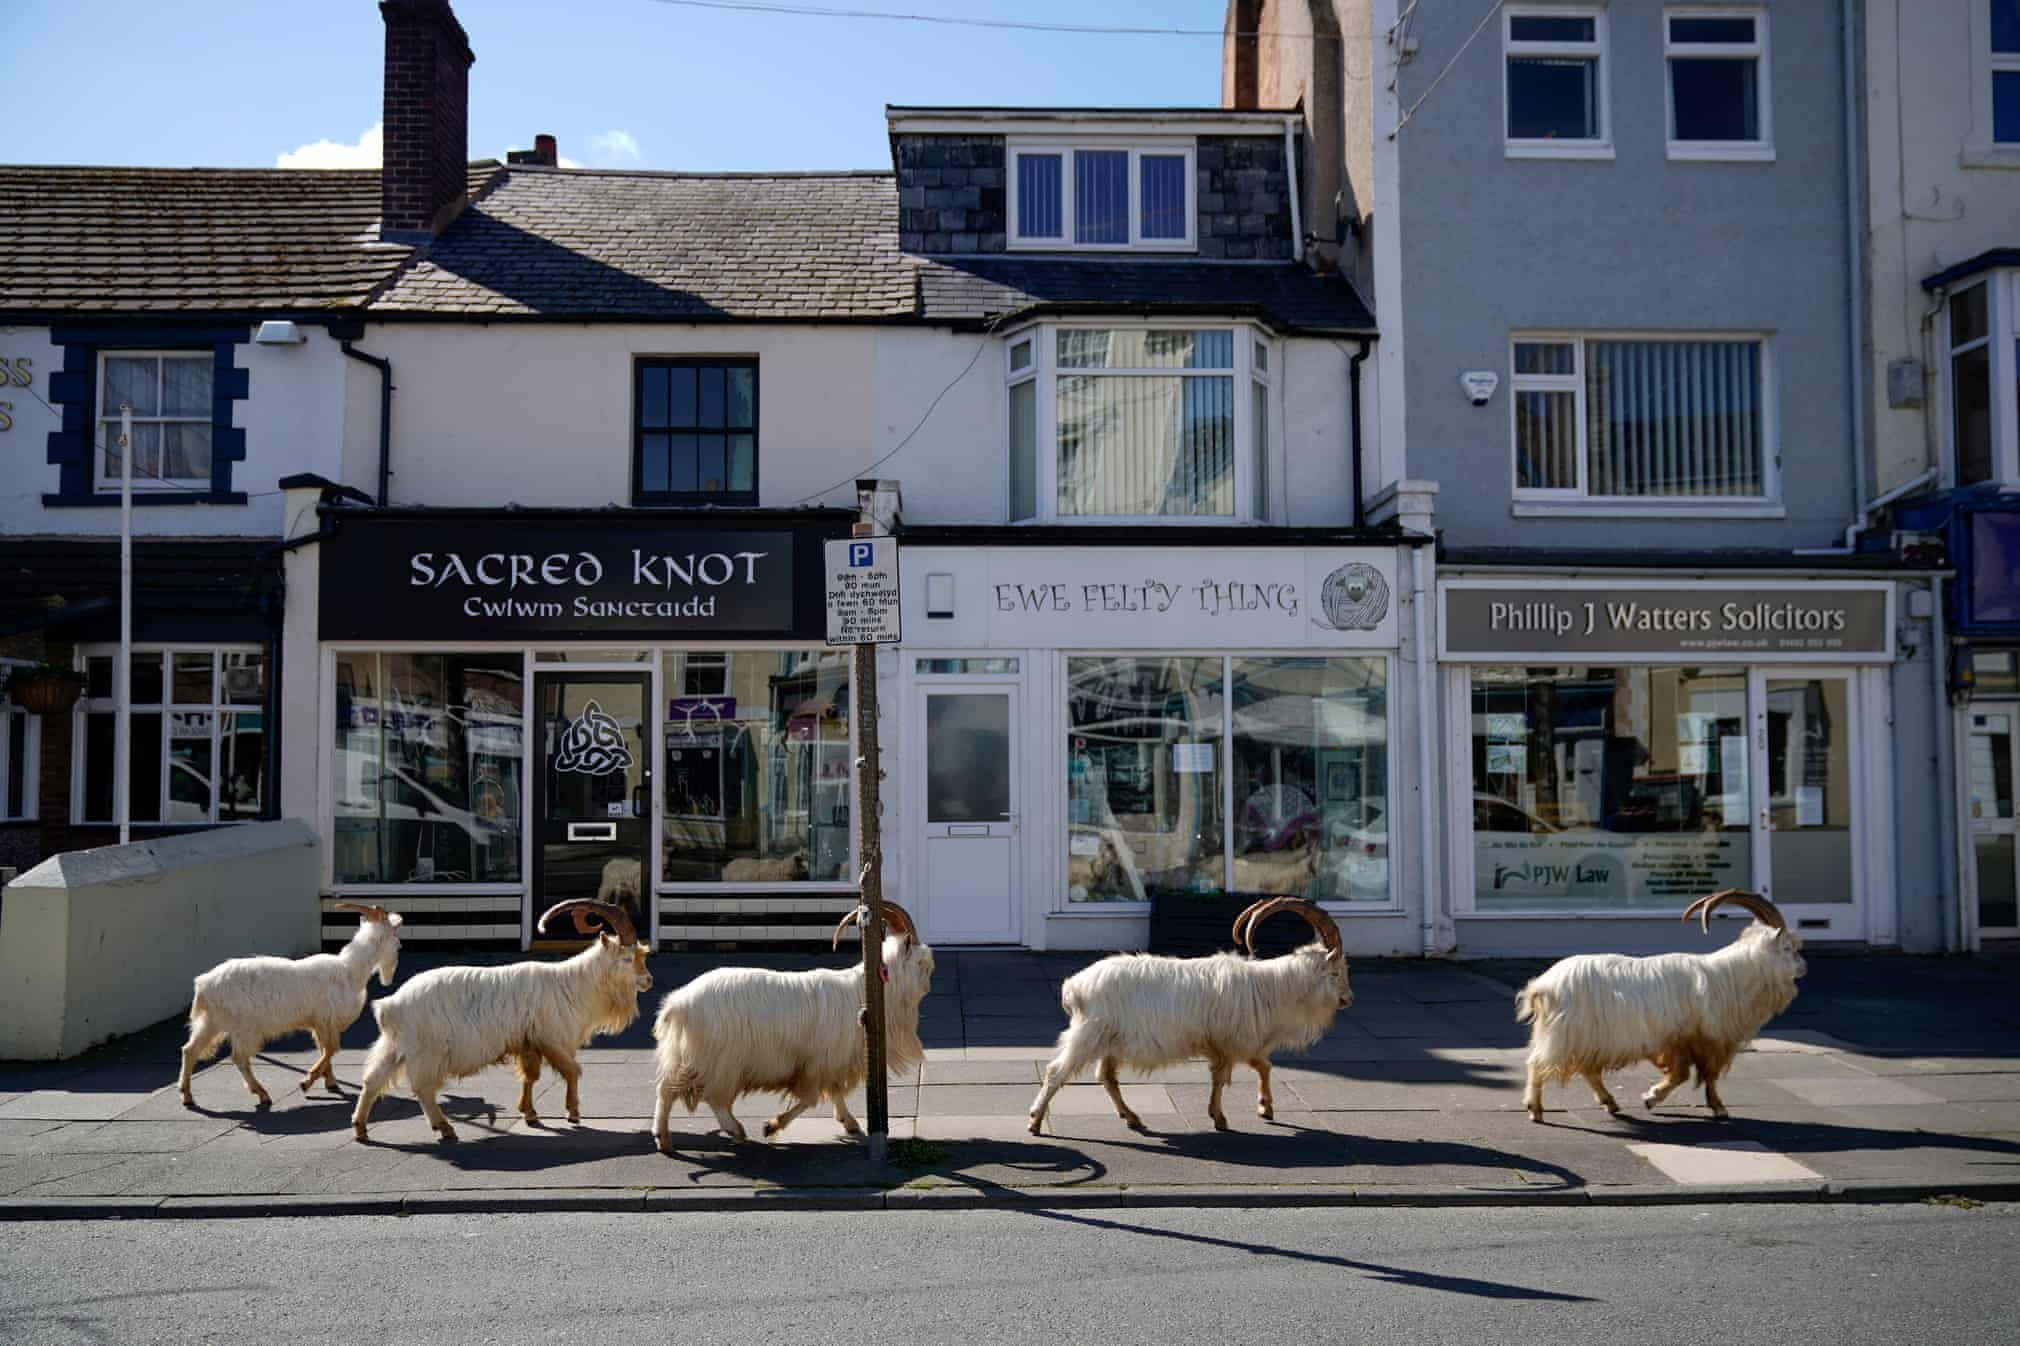 https://campaign-image.com/zohocampaigns/224260000002056004_zc_v39_goats_in_england.jpg